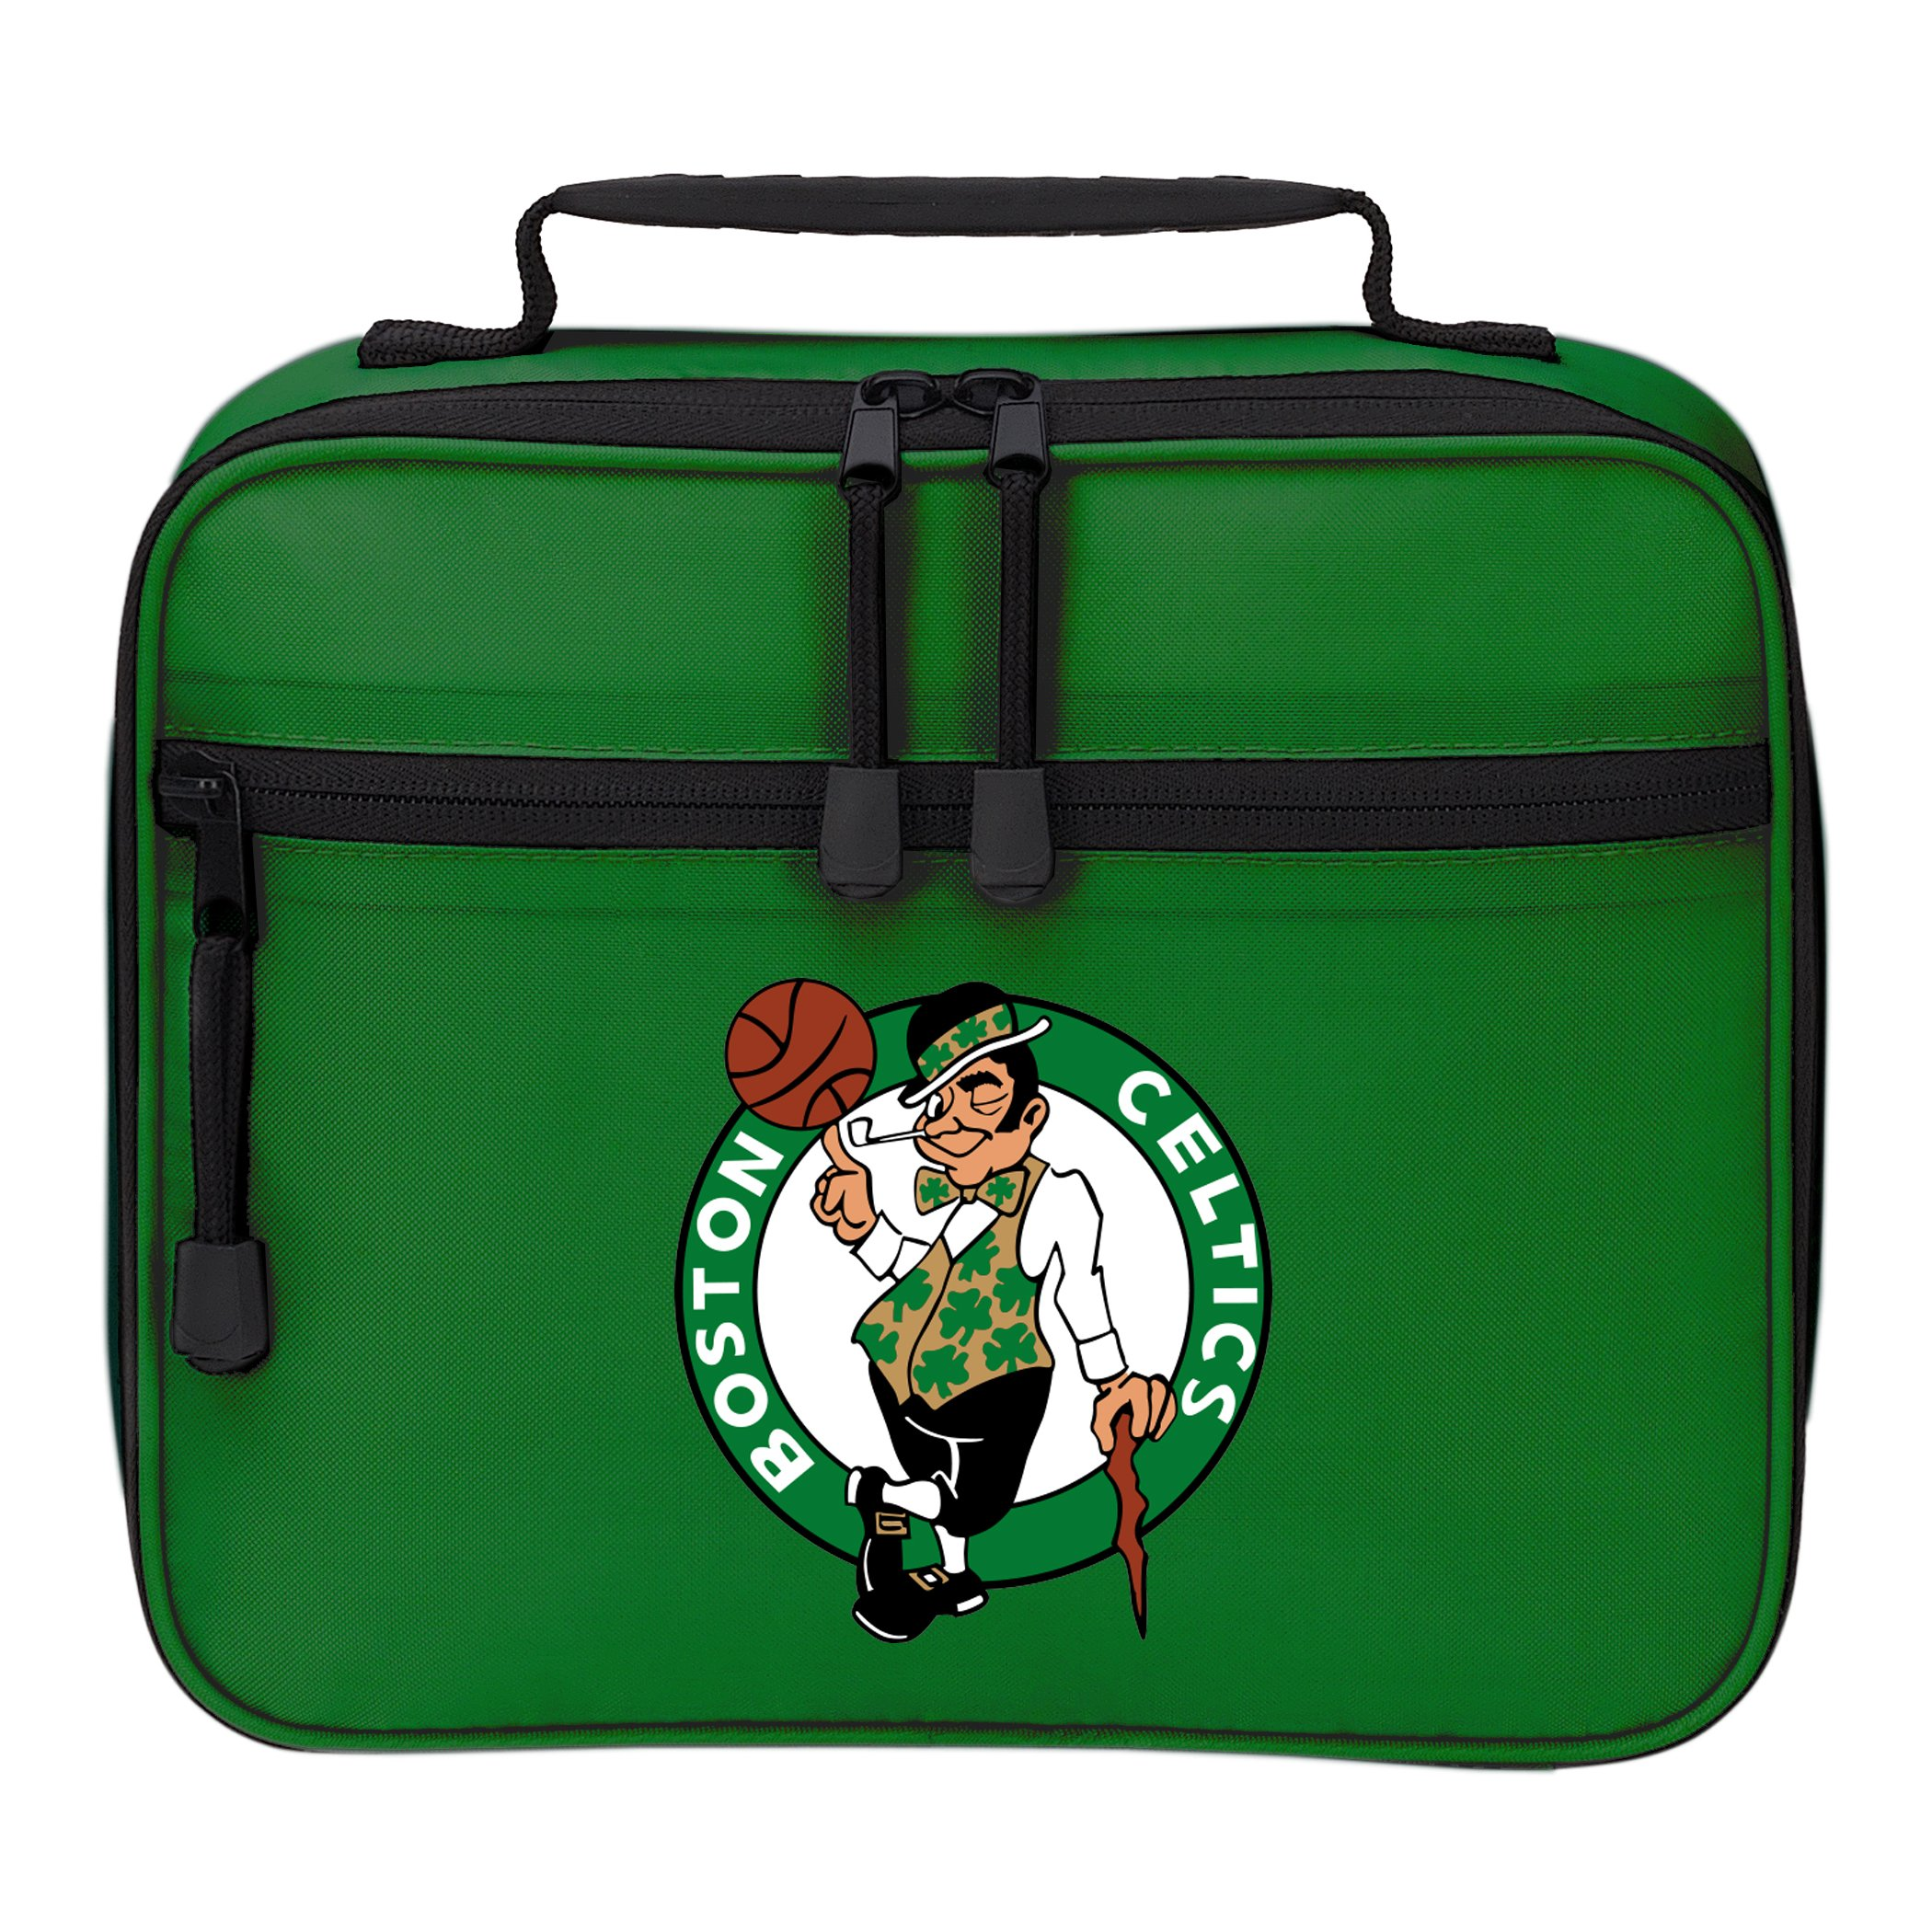 NBA Boston Celtics ''Cooltime'' Lunch Kit''Cooltime'' Lunch Kit, Green, One Size